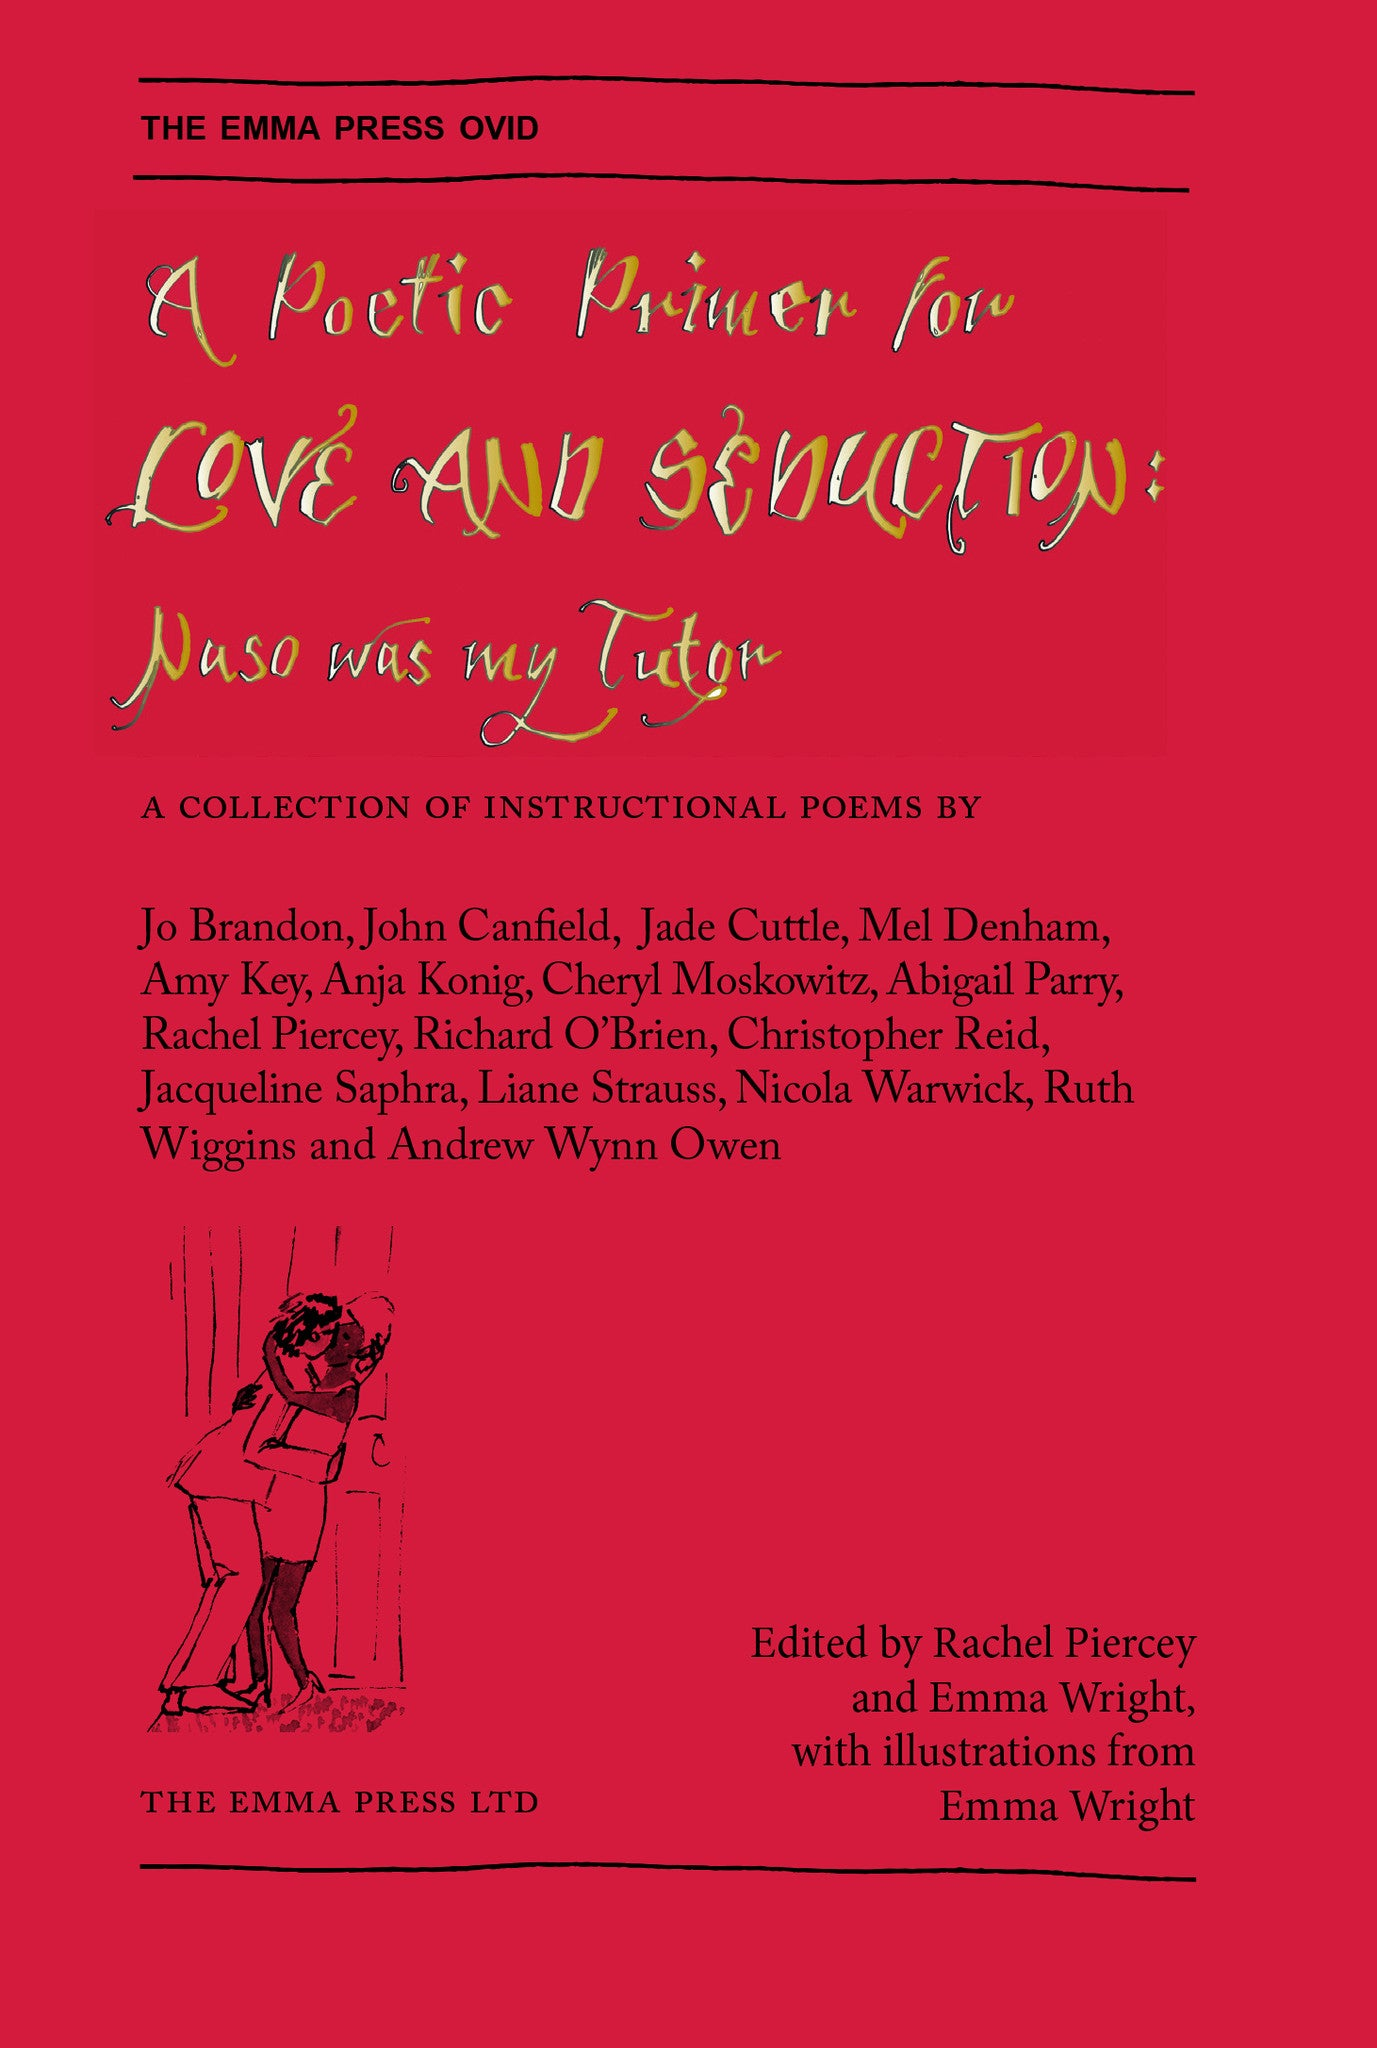 A Poetic Primer of Love and Seduction